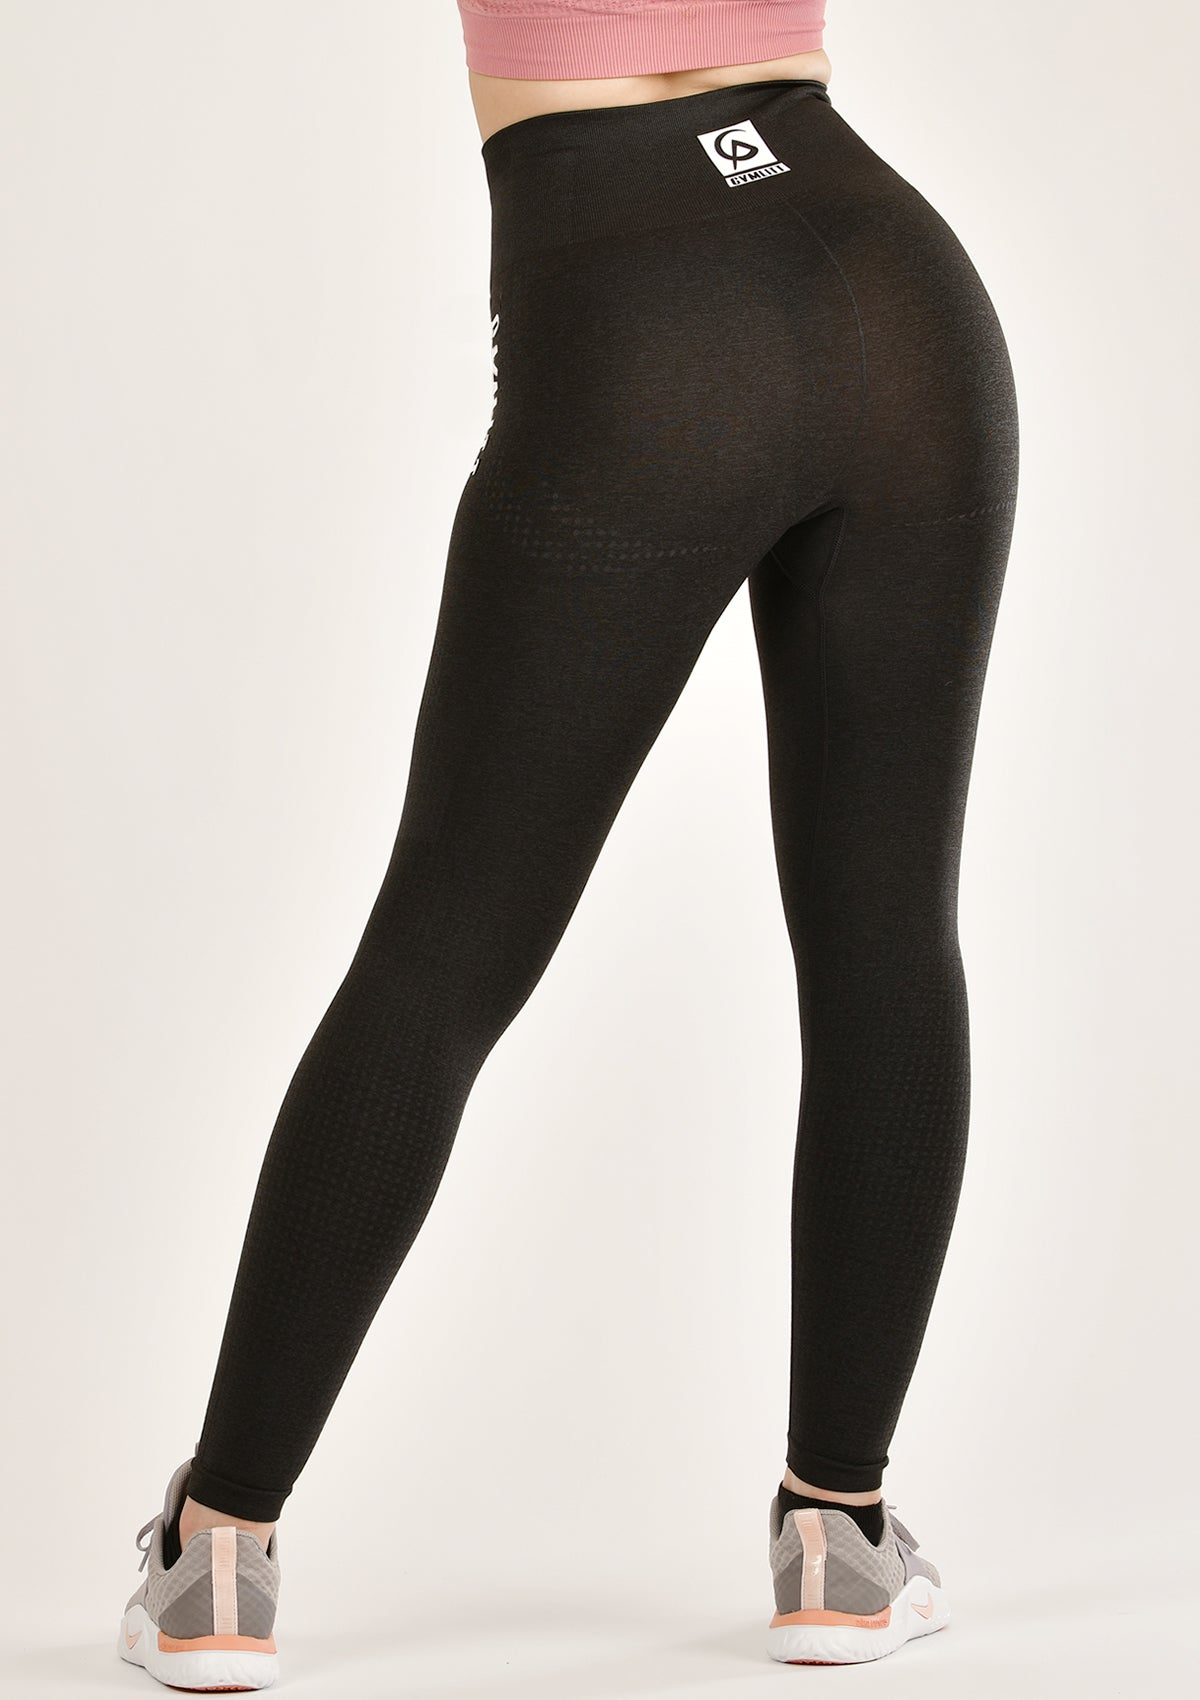 illusive Black Leggings